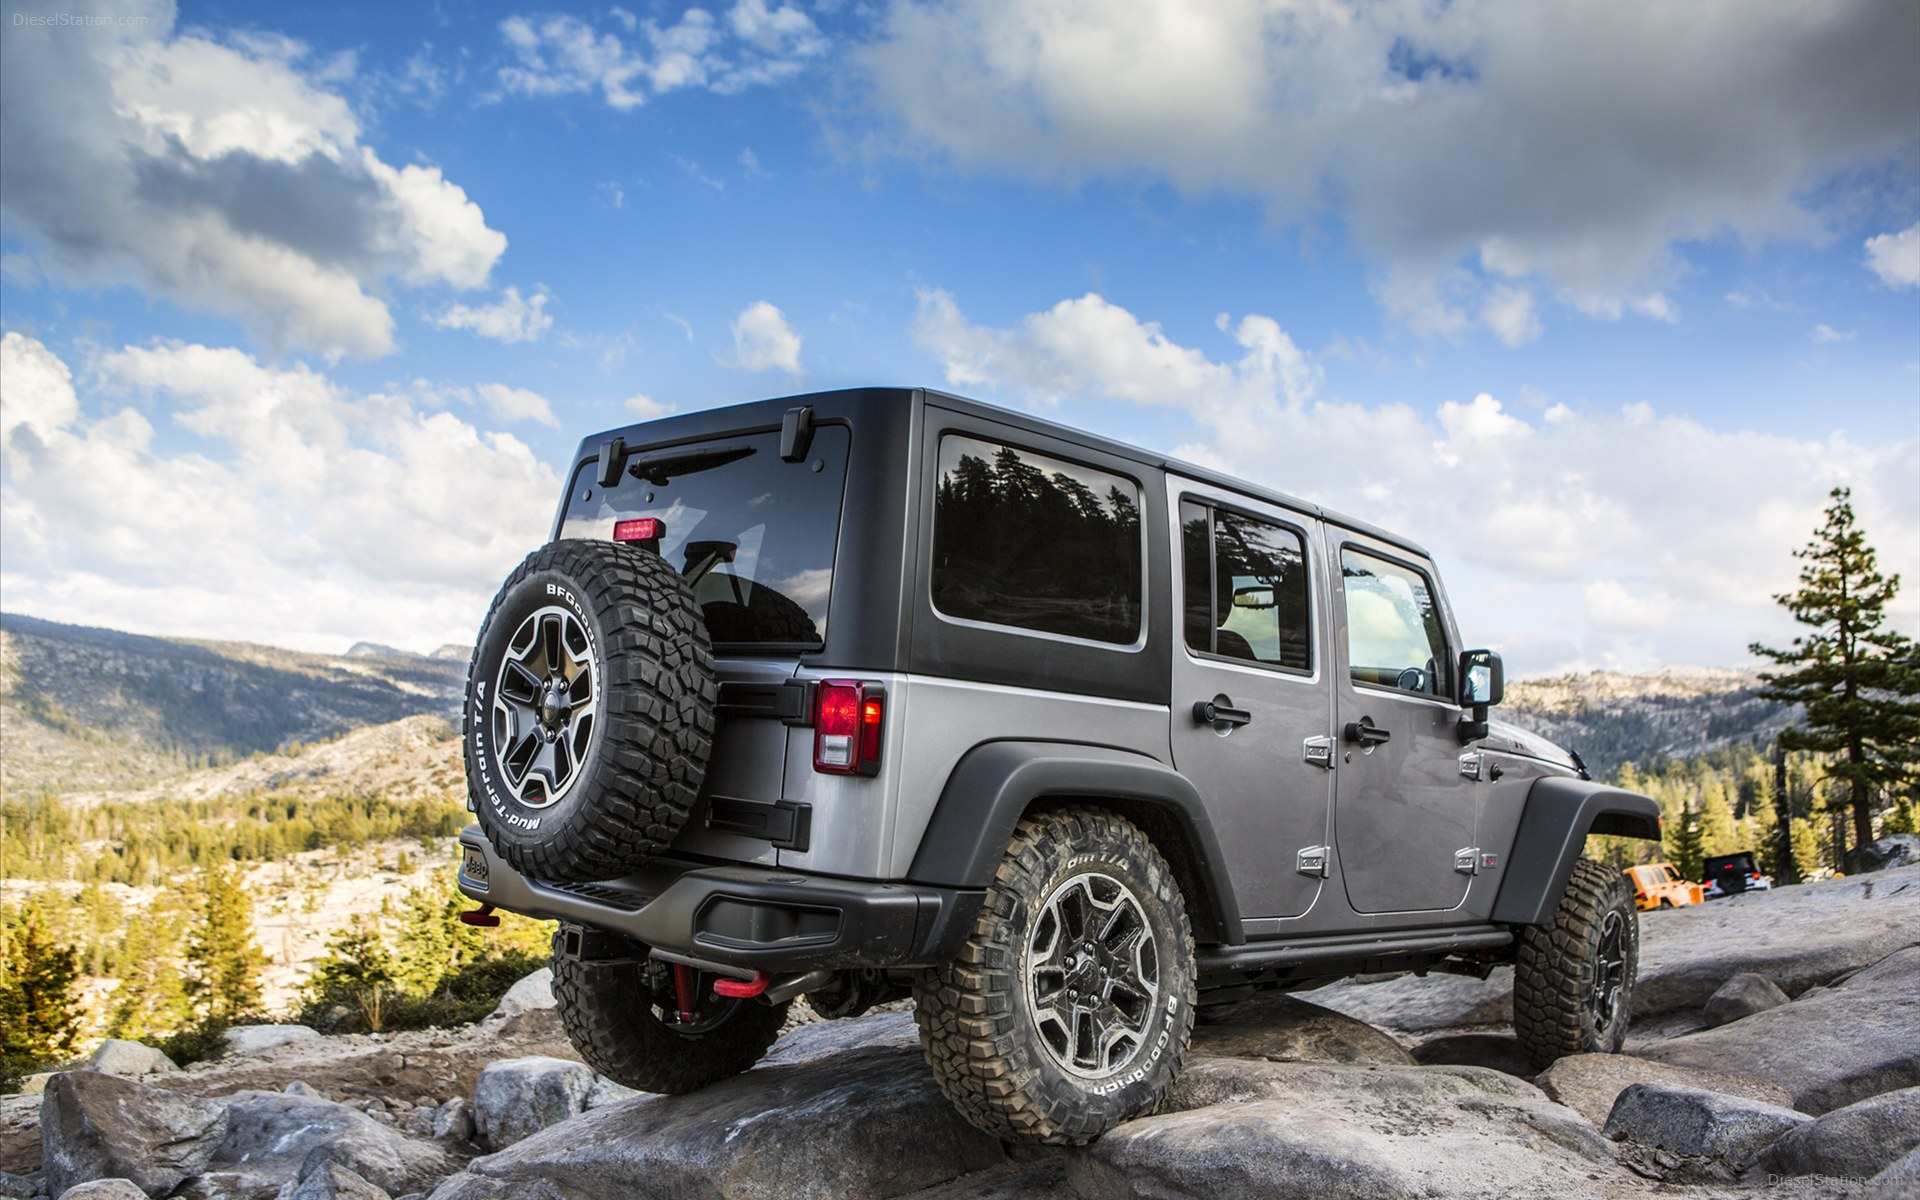 Jeep Rubicon 2015 photo - 3